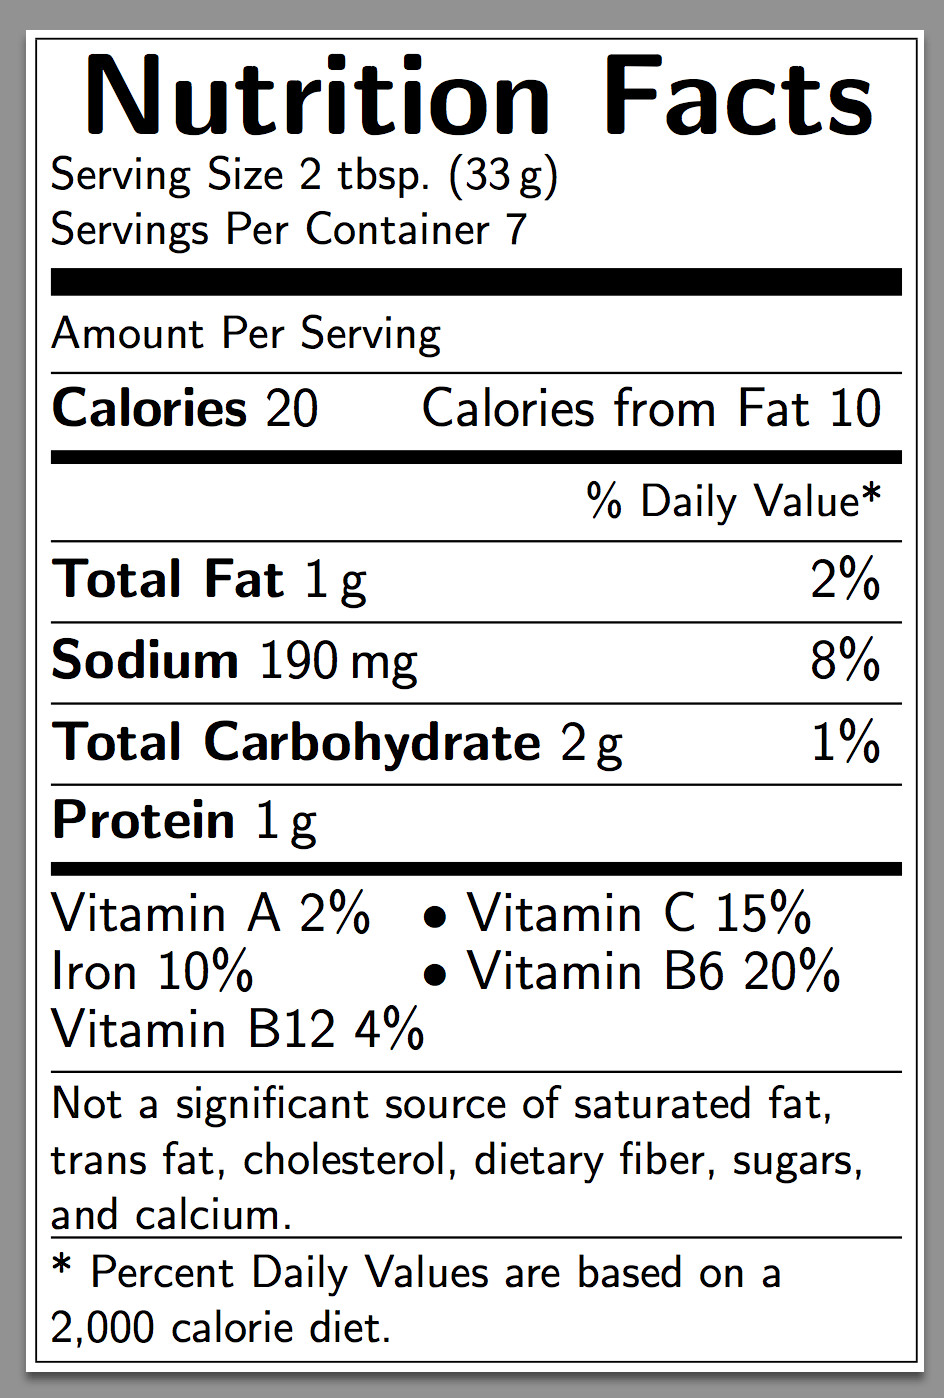 Blank Nutrition Label Template Word Diagrams How Can I Create A Nutrition Facts Label